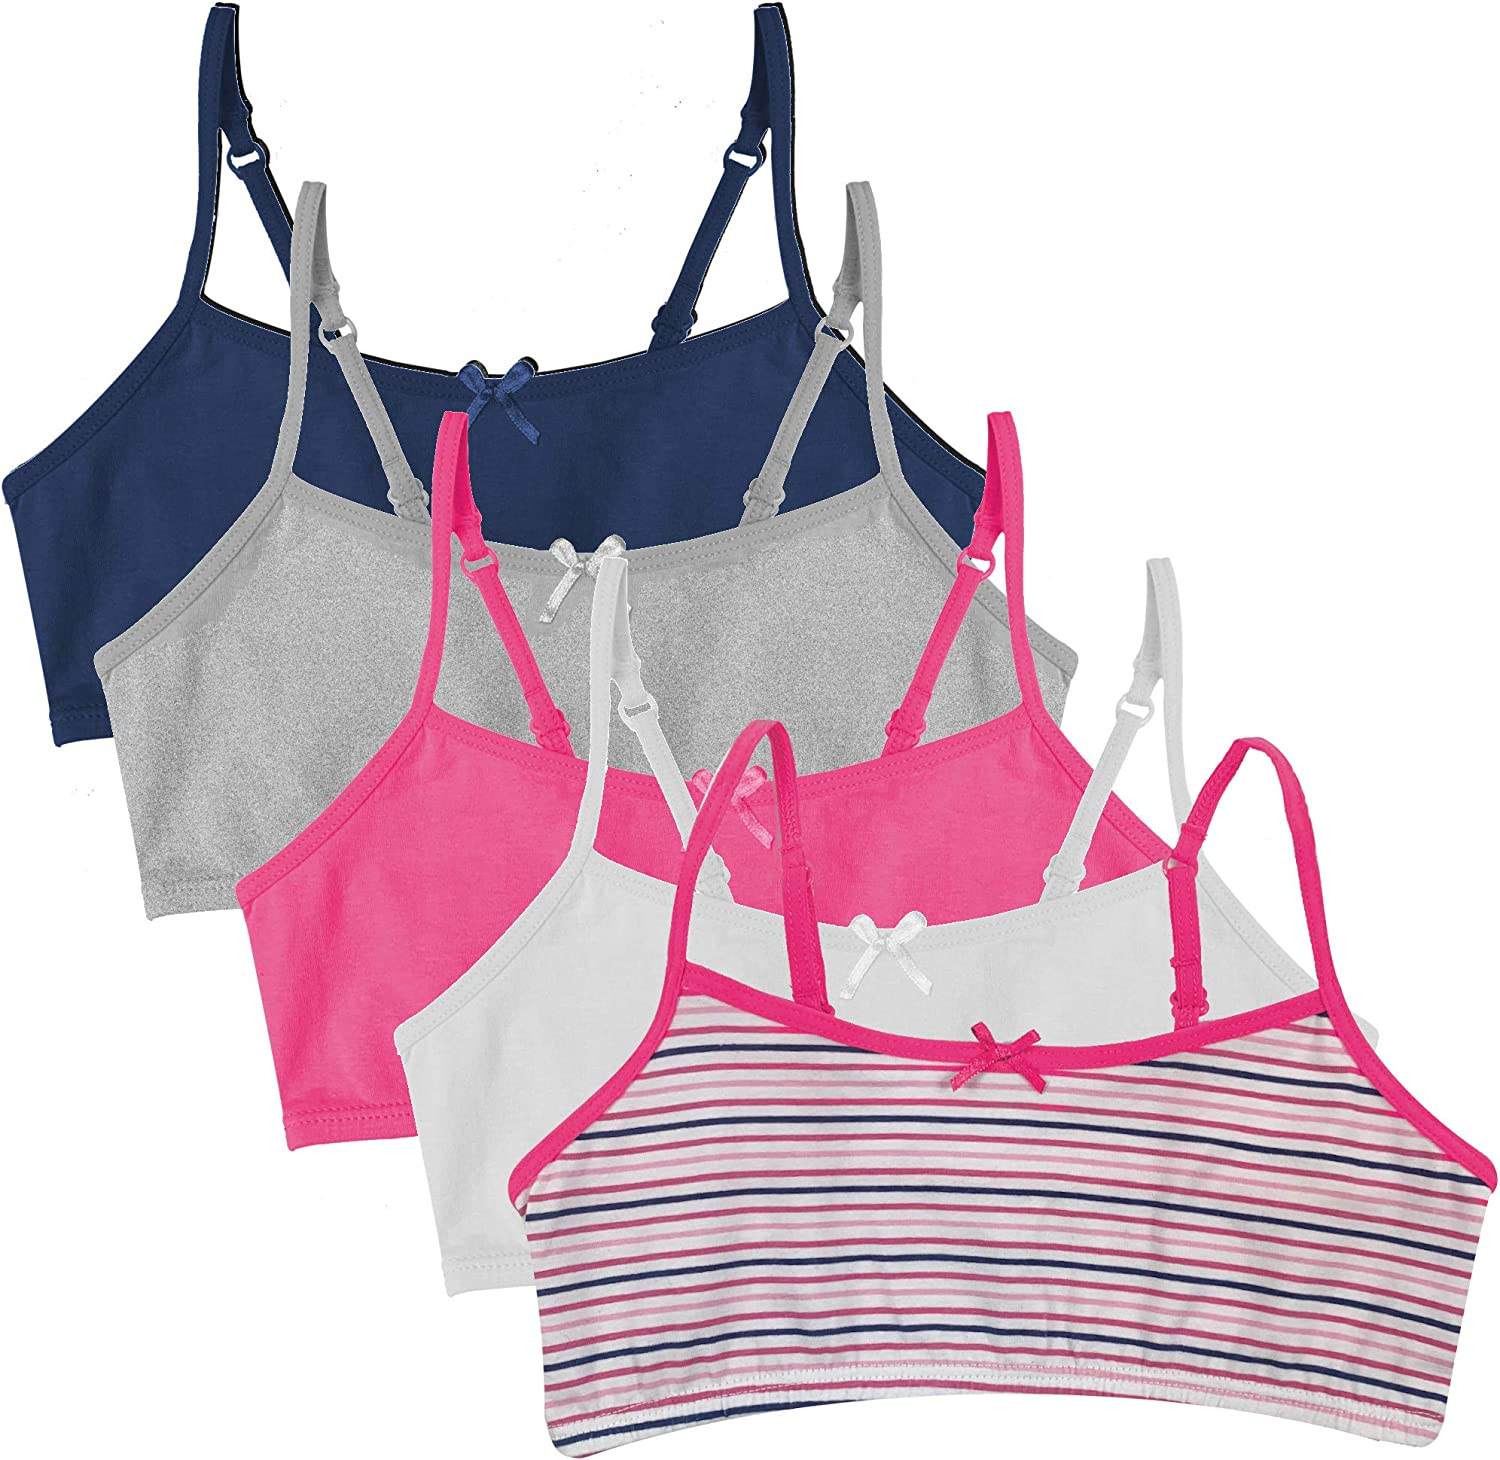 Girls Crop Top First Bra Cotton White Pink Gray 3 Pack Age 9-12 Years 34A-40A